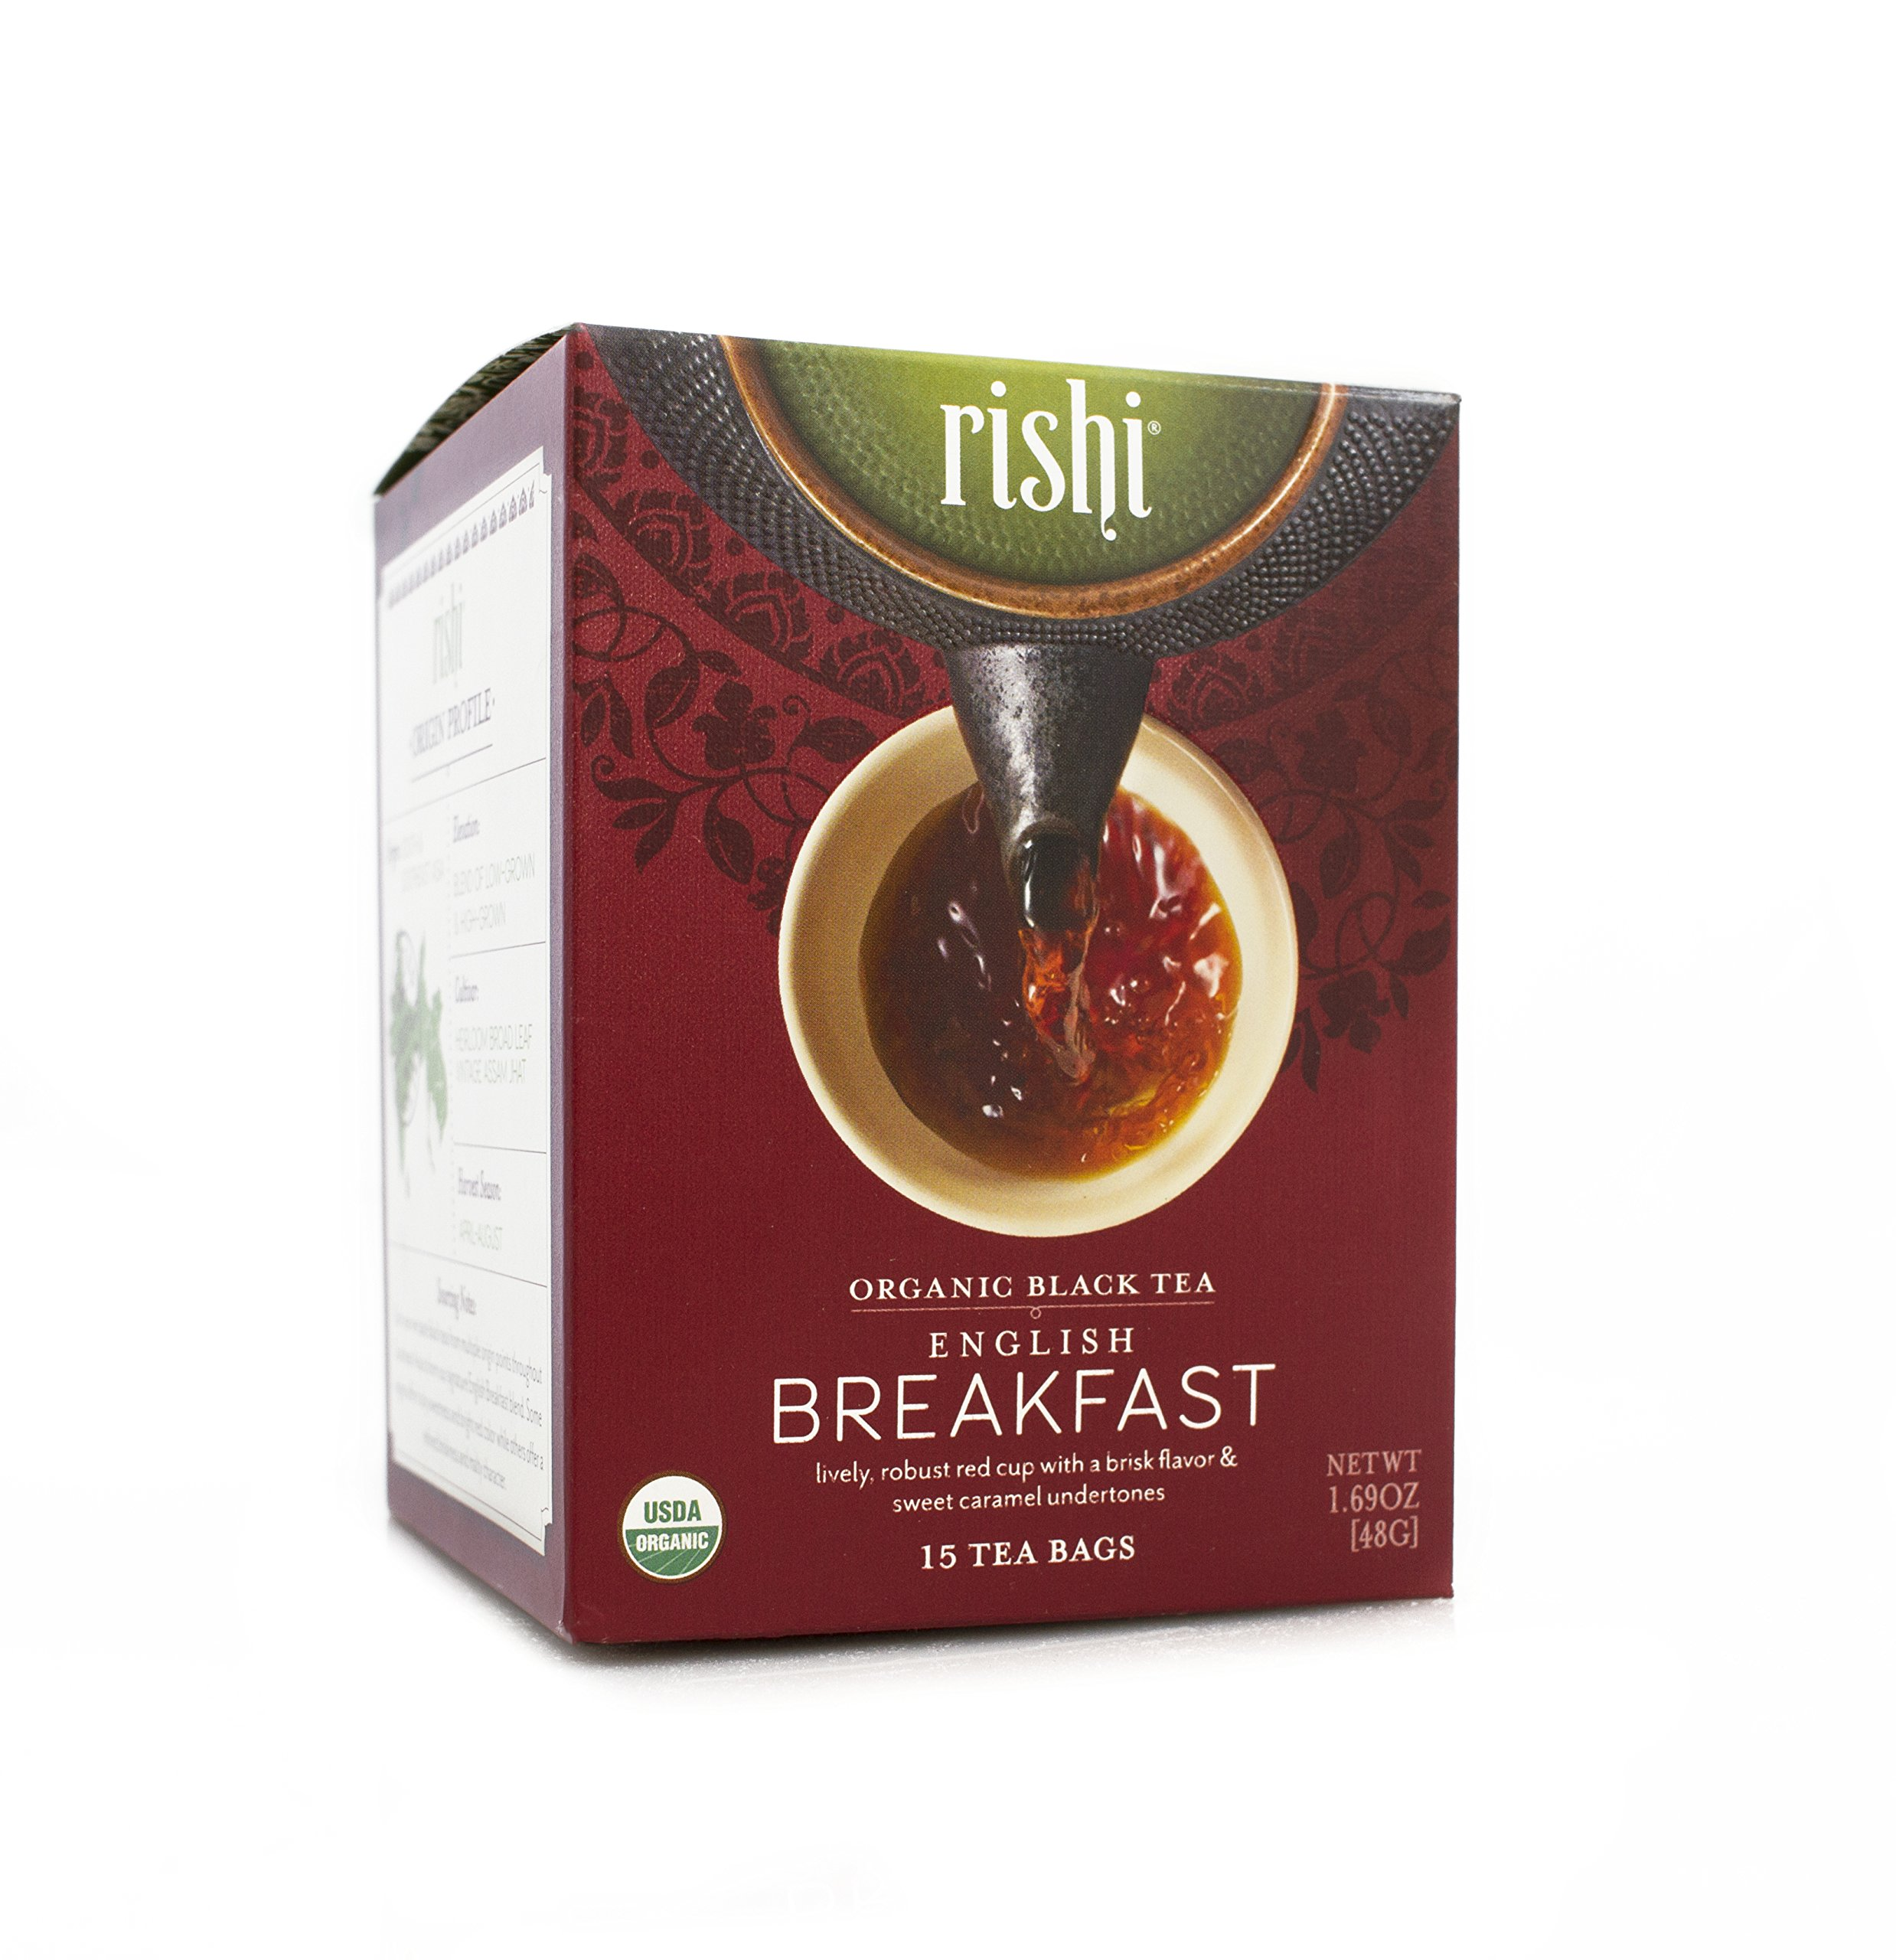 Rishi Tea Organic English Breakfast Tea Bags, 15 Count (Pack of 6) by Rishi Tea